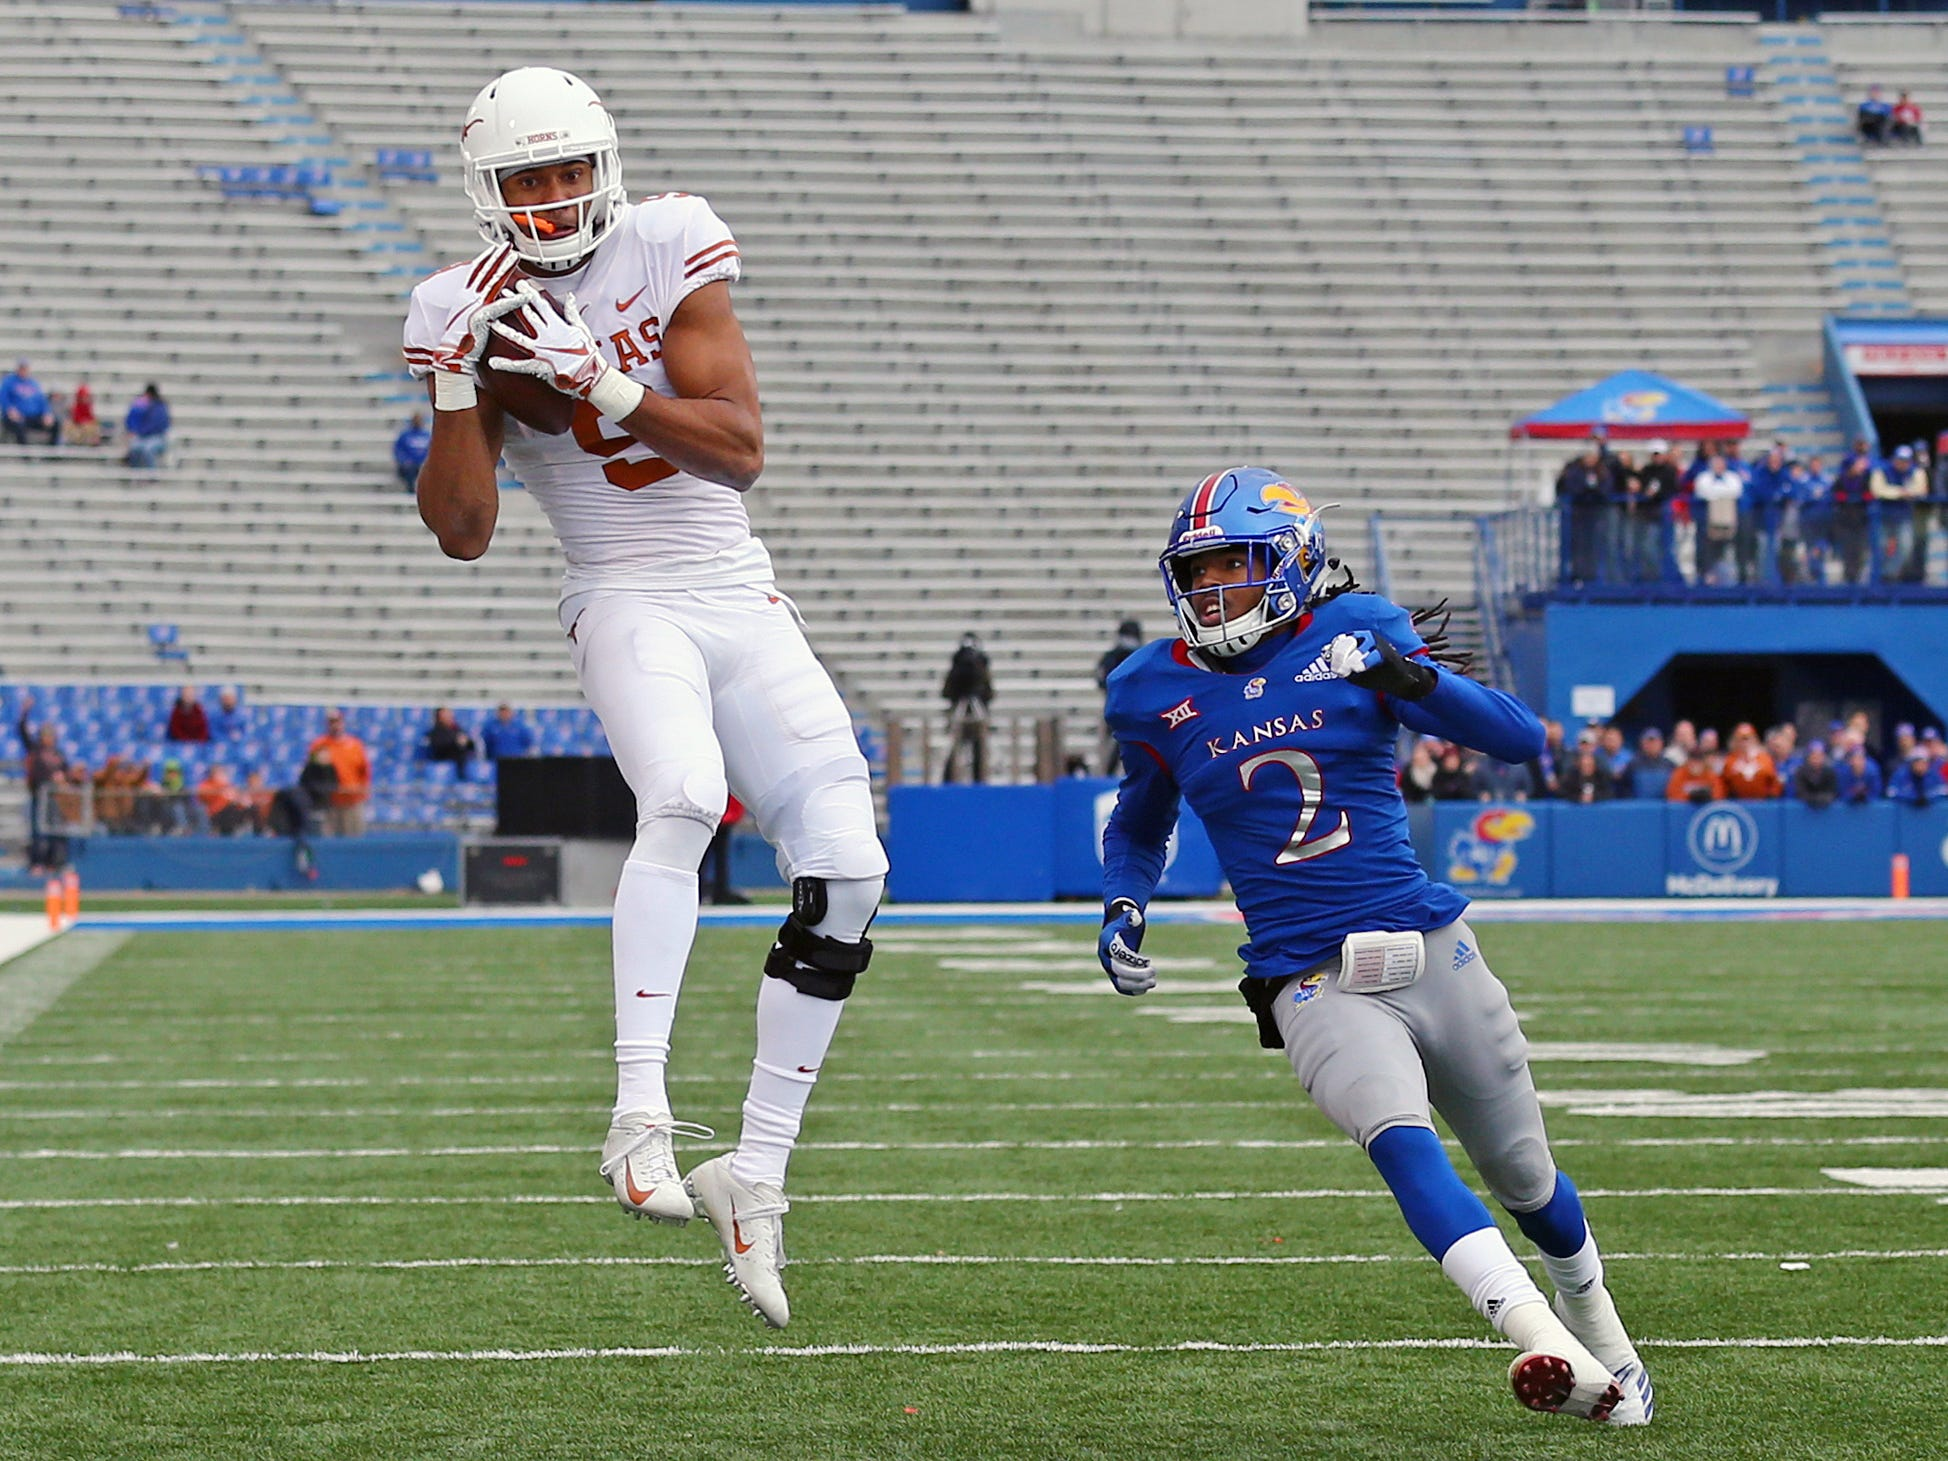 Texas wide receiver Collin Johnson (9) catches a pass for a touchdown against Kansas cornerback Corione Harris during the first half at Memorial Stadium.